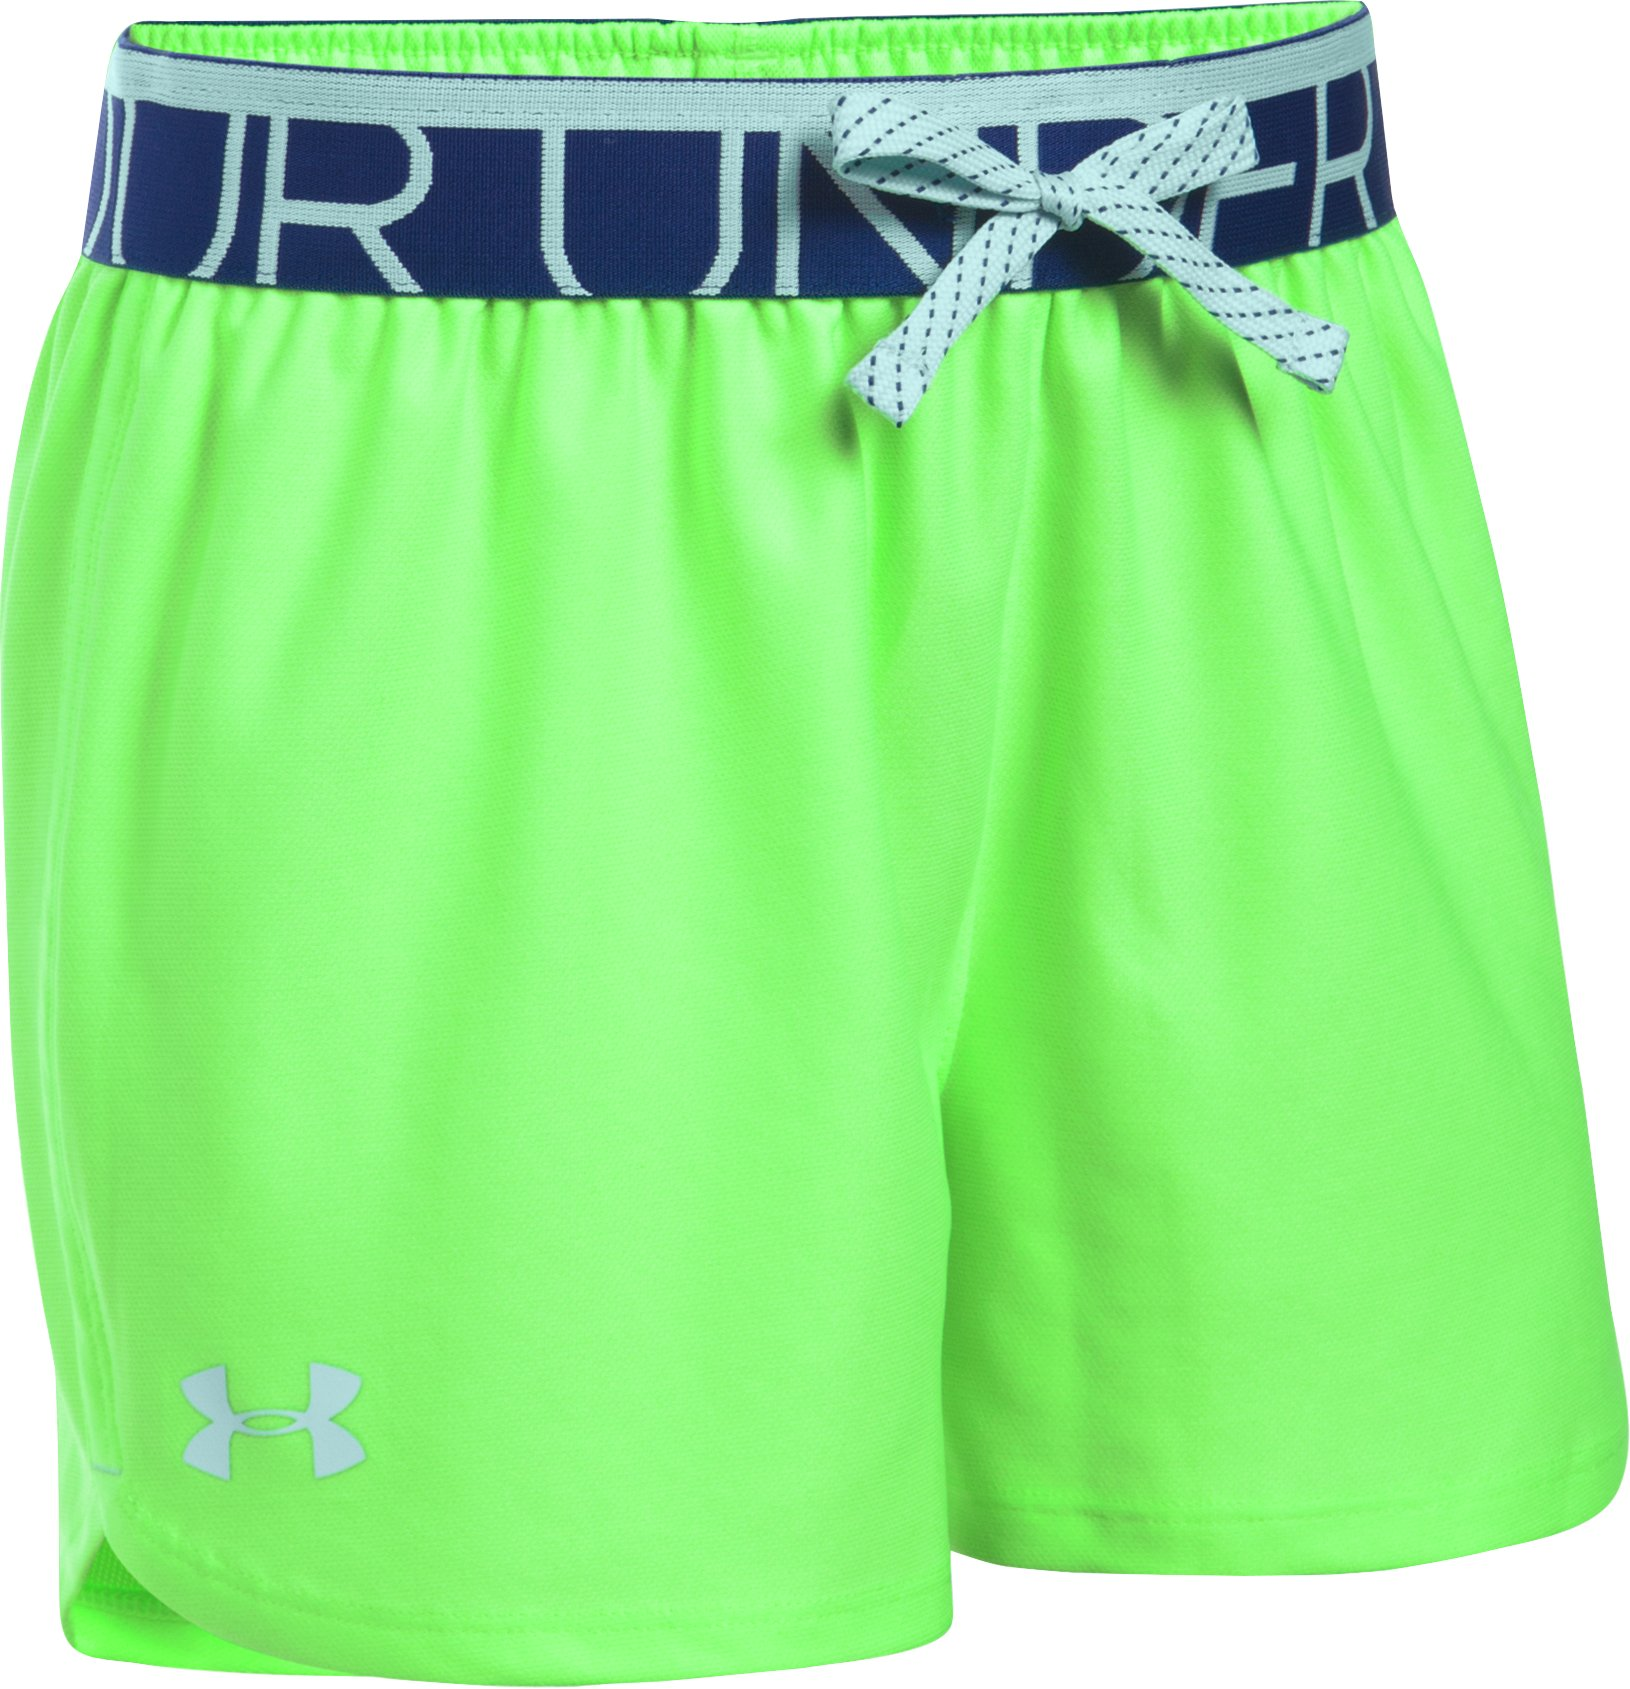 Girls' UA Play Up Shorts - 3 for $35, LIME LIGHT